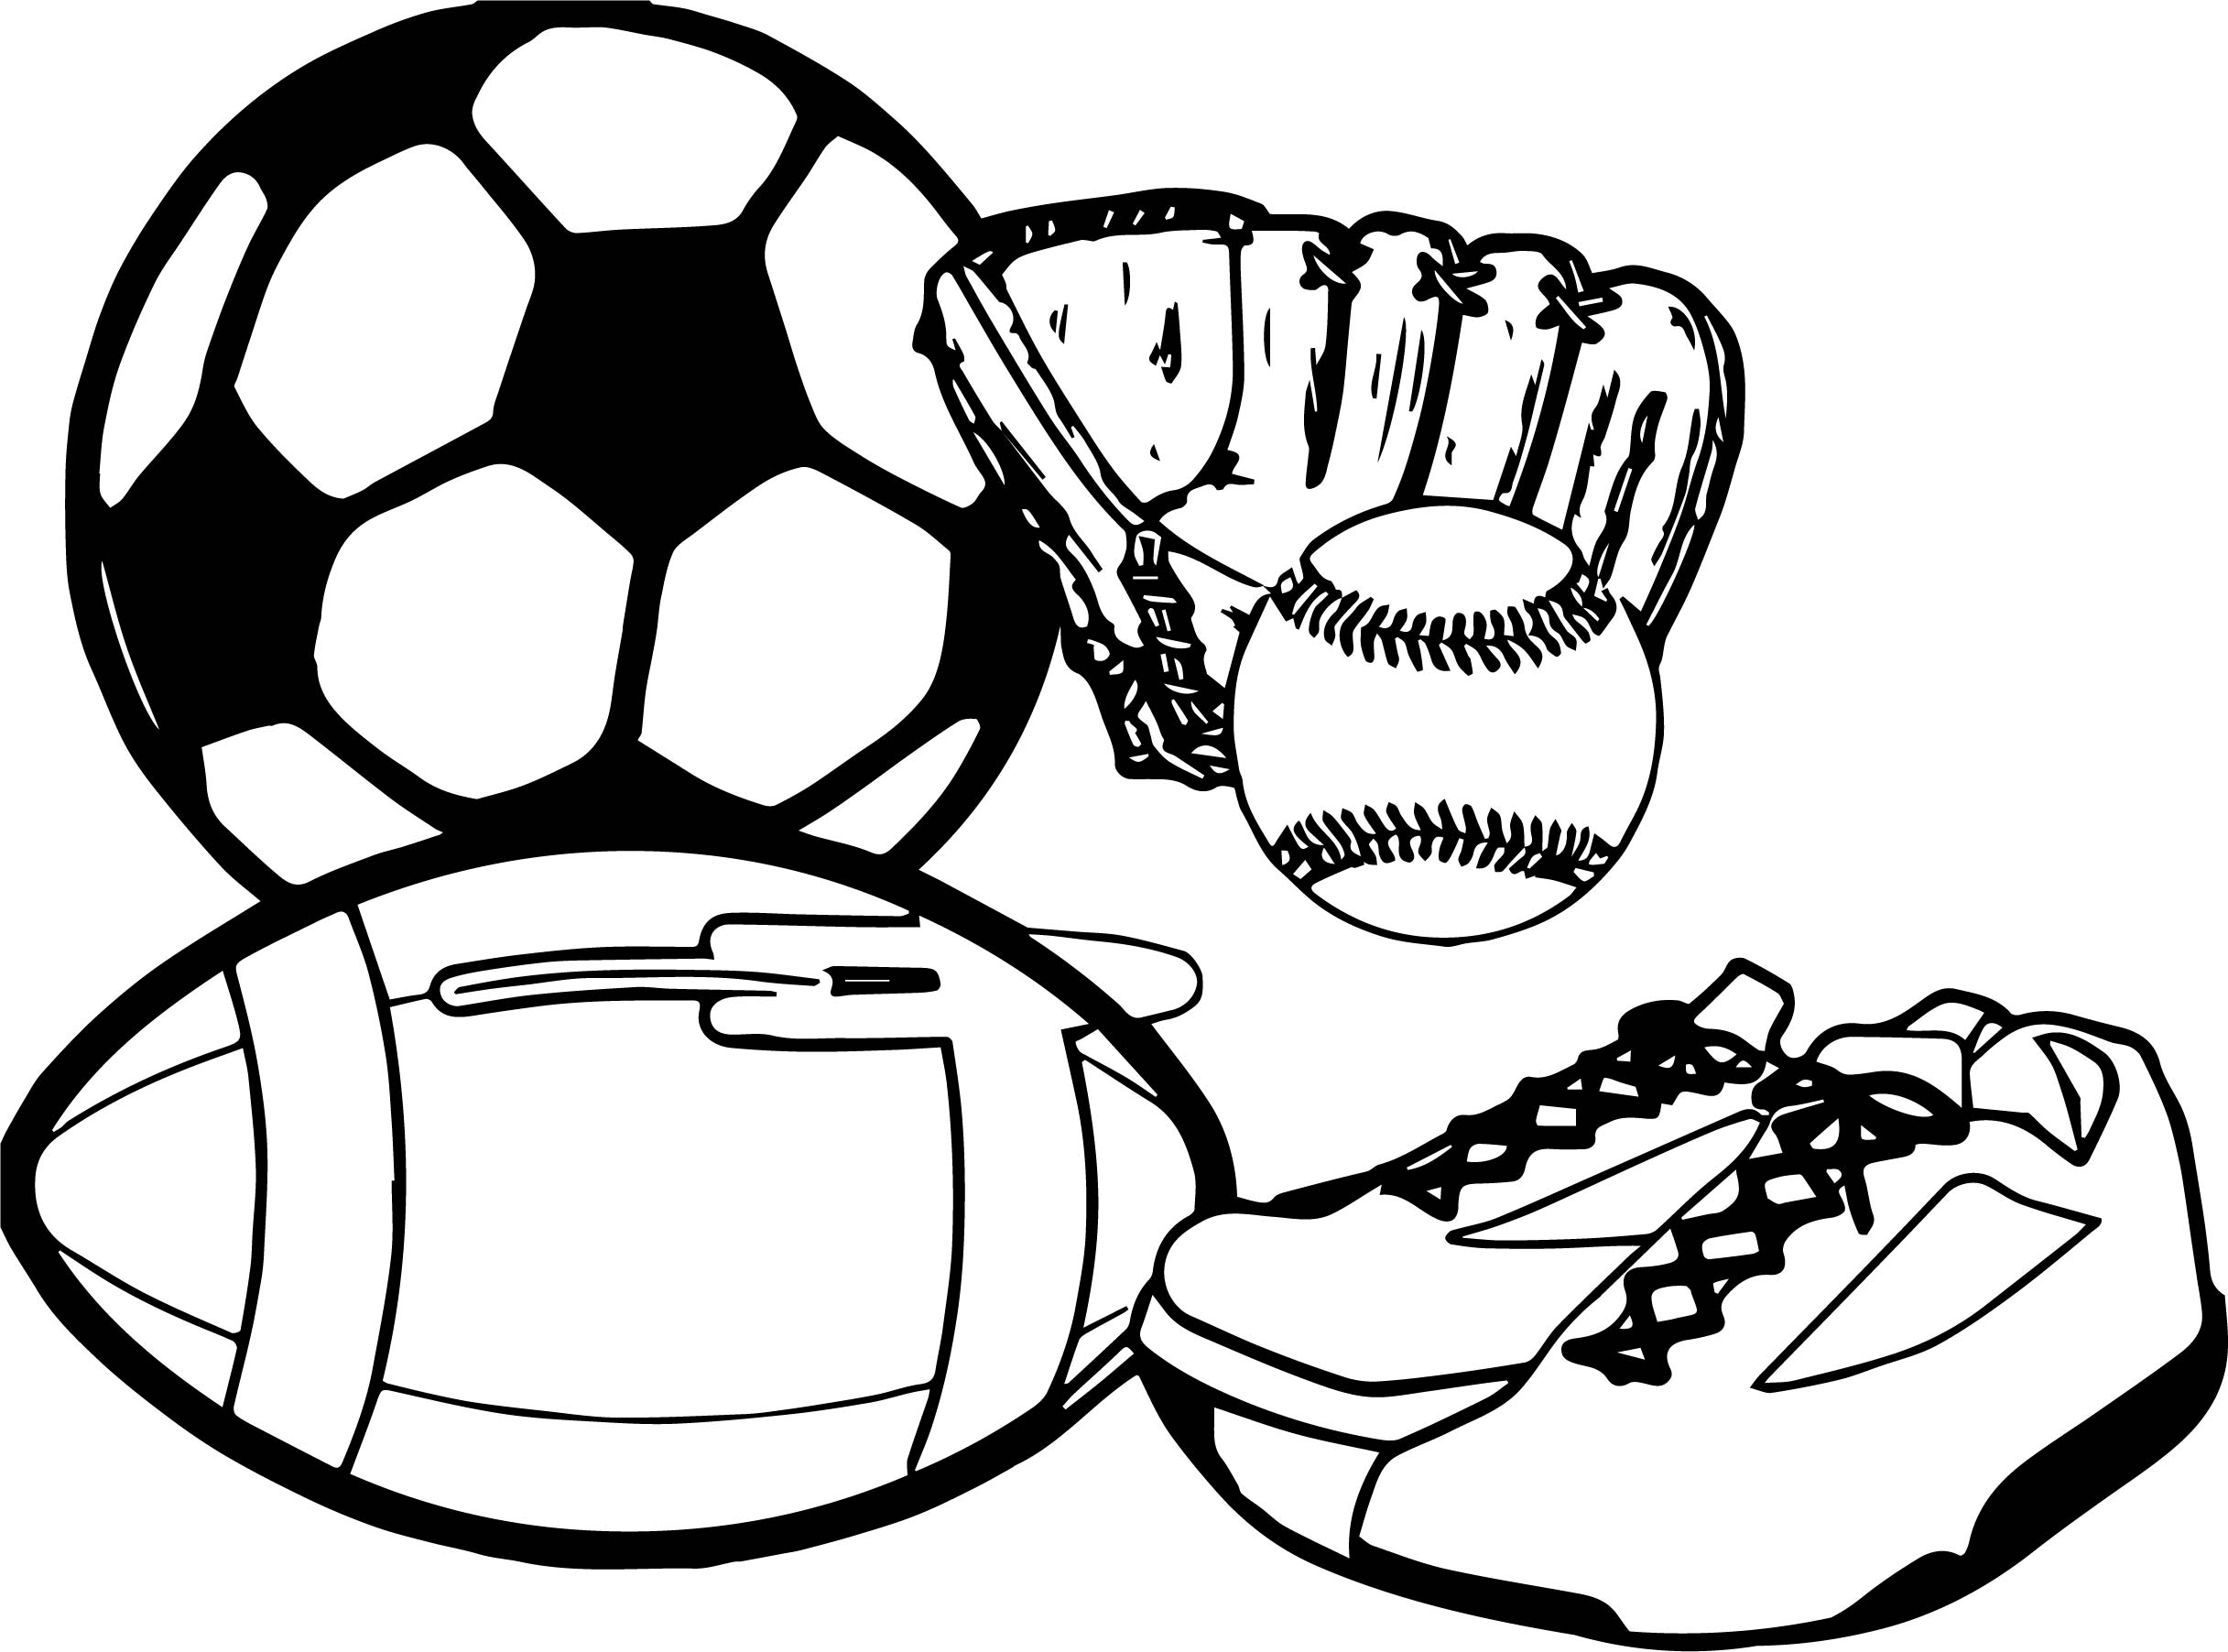 activity sport coloring page. Black Bedroom Furniture Sets. Home Design Ideas